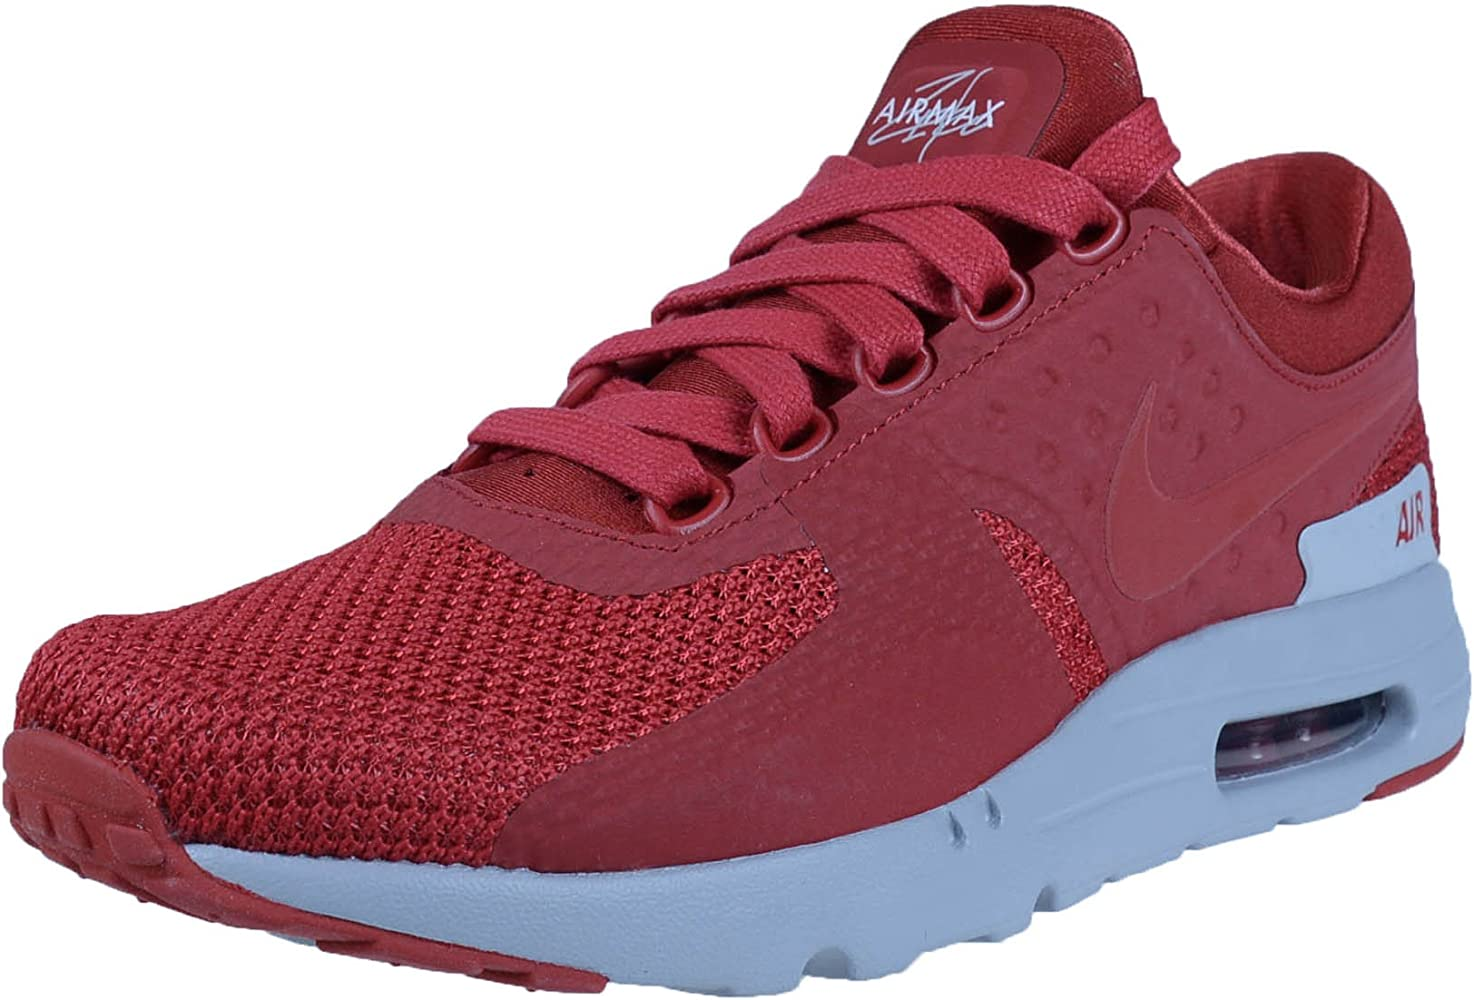 newest f7e6a b5dad Amazon.com | Nike Air Max Zero Premium Men's Shoes Gym Red ...